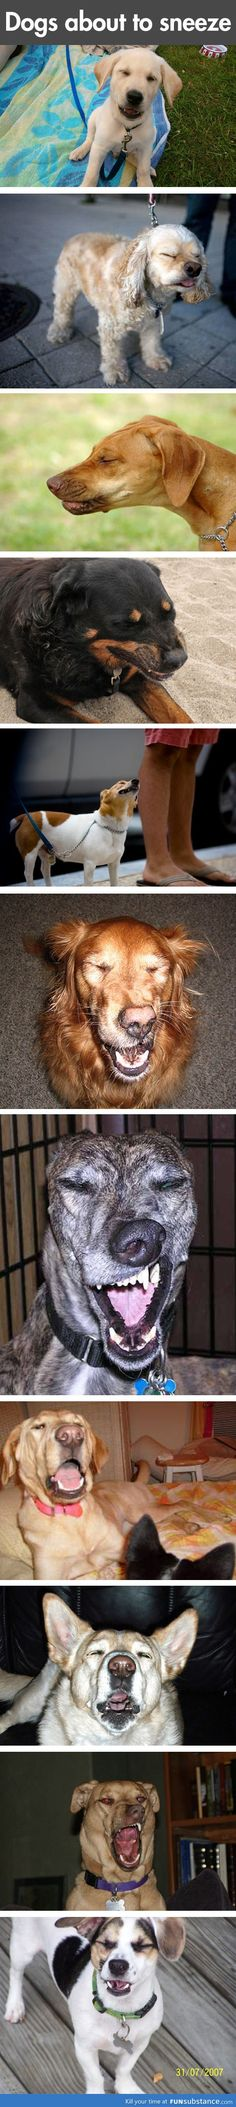 Dogs about to sneeze